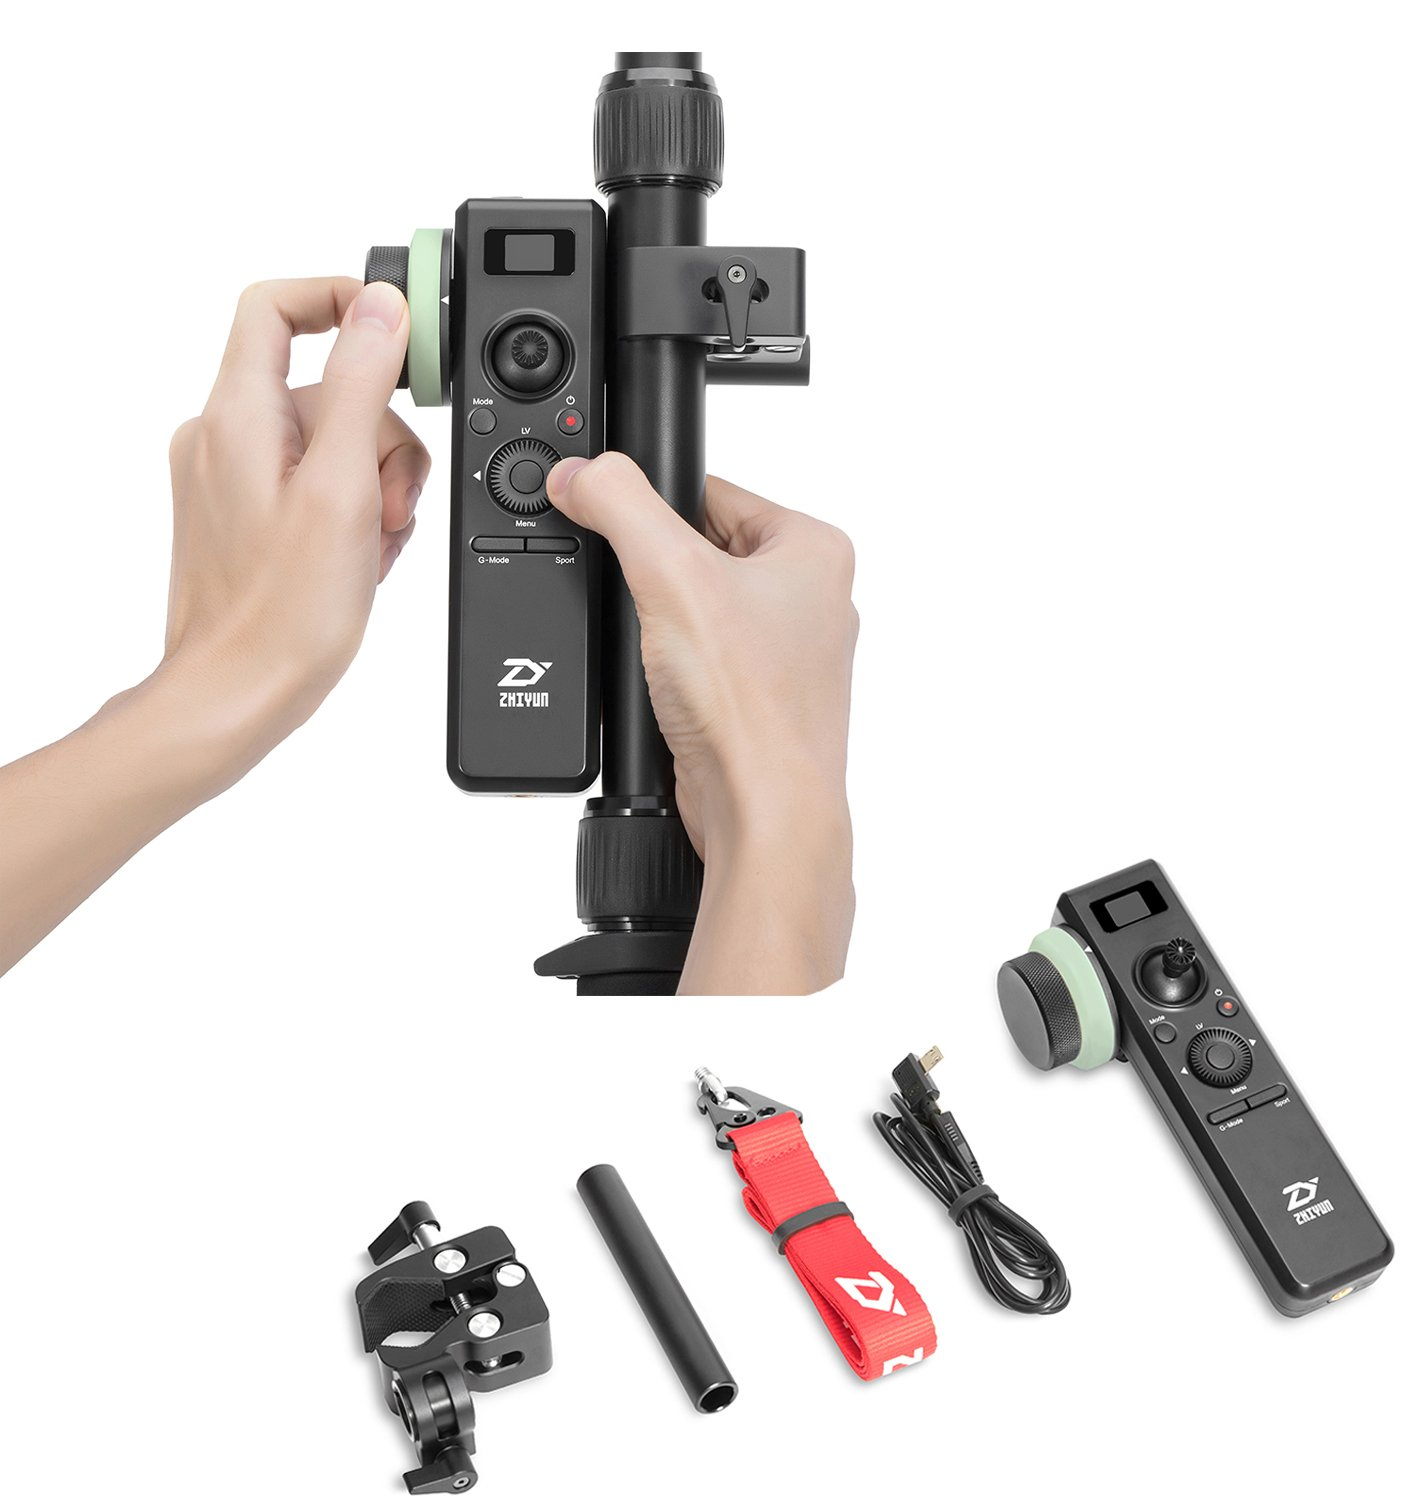 Zhiyun [Official] Crane 2 Wireless Motion Sensor Remote Control with Follow Focus 25 Hours Runtime for Crane 2 by zhi yun